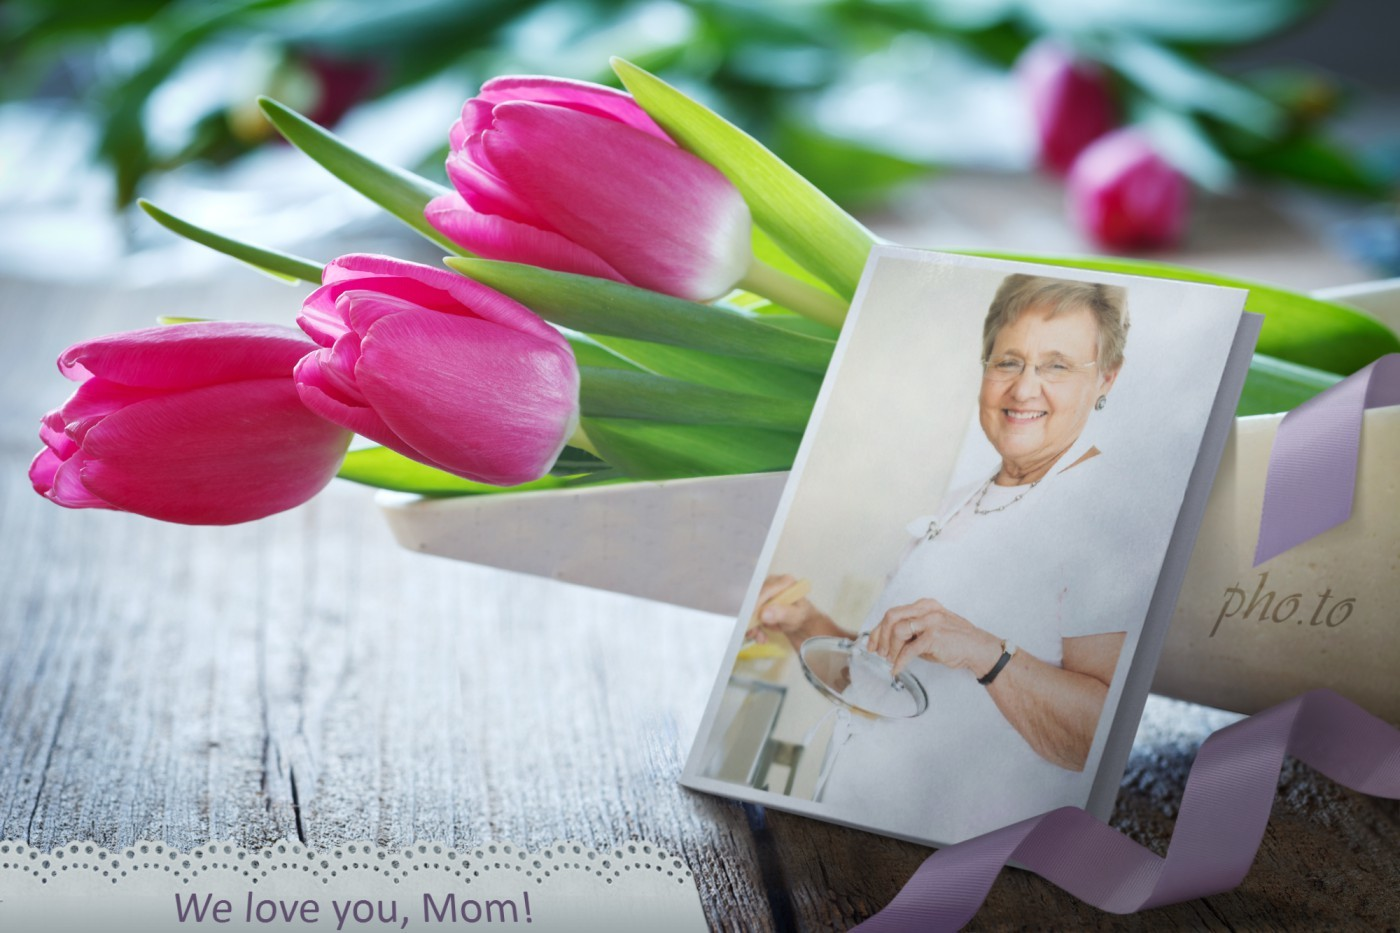 Mothers day greeting card template - free personalized gift.